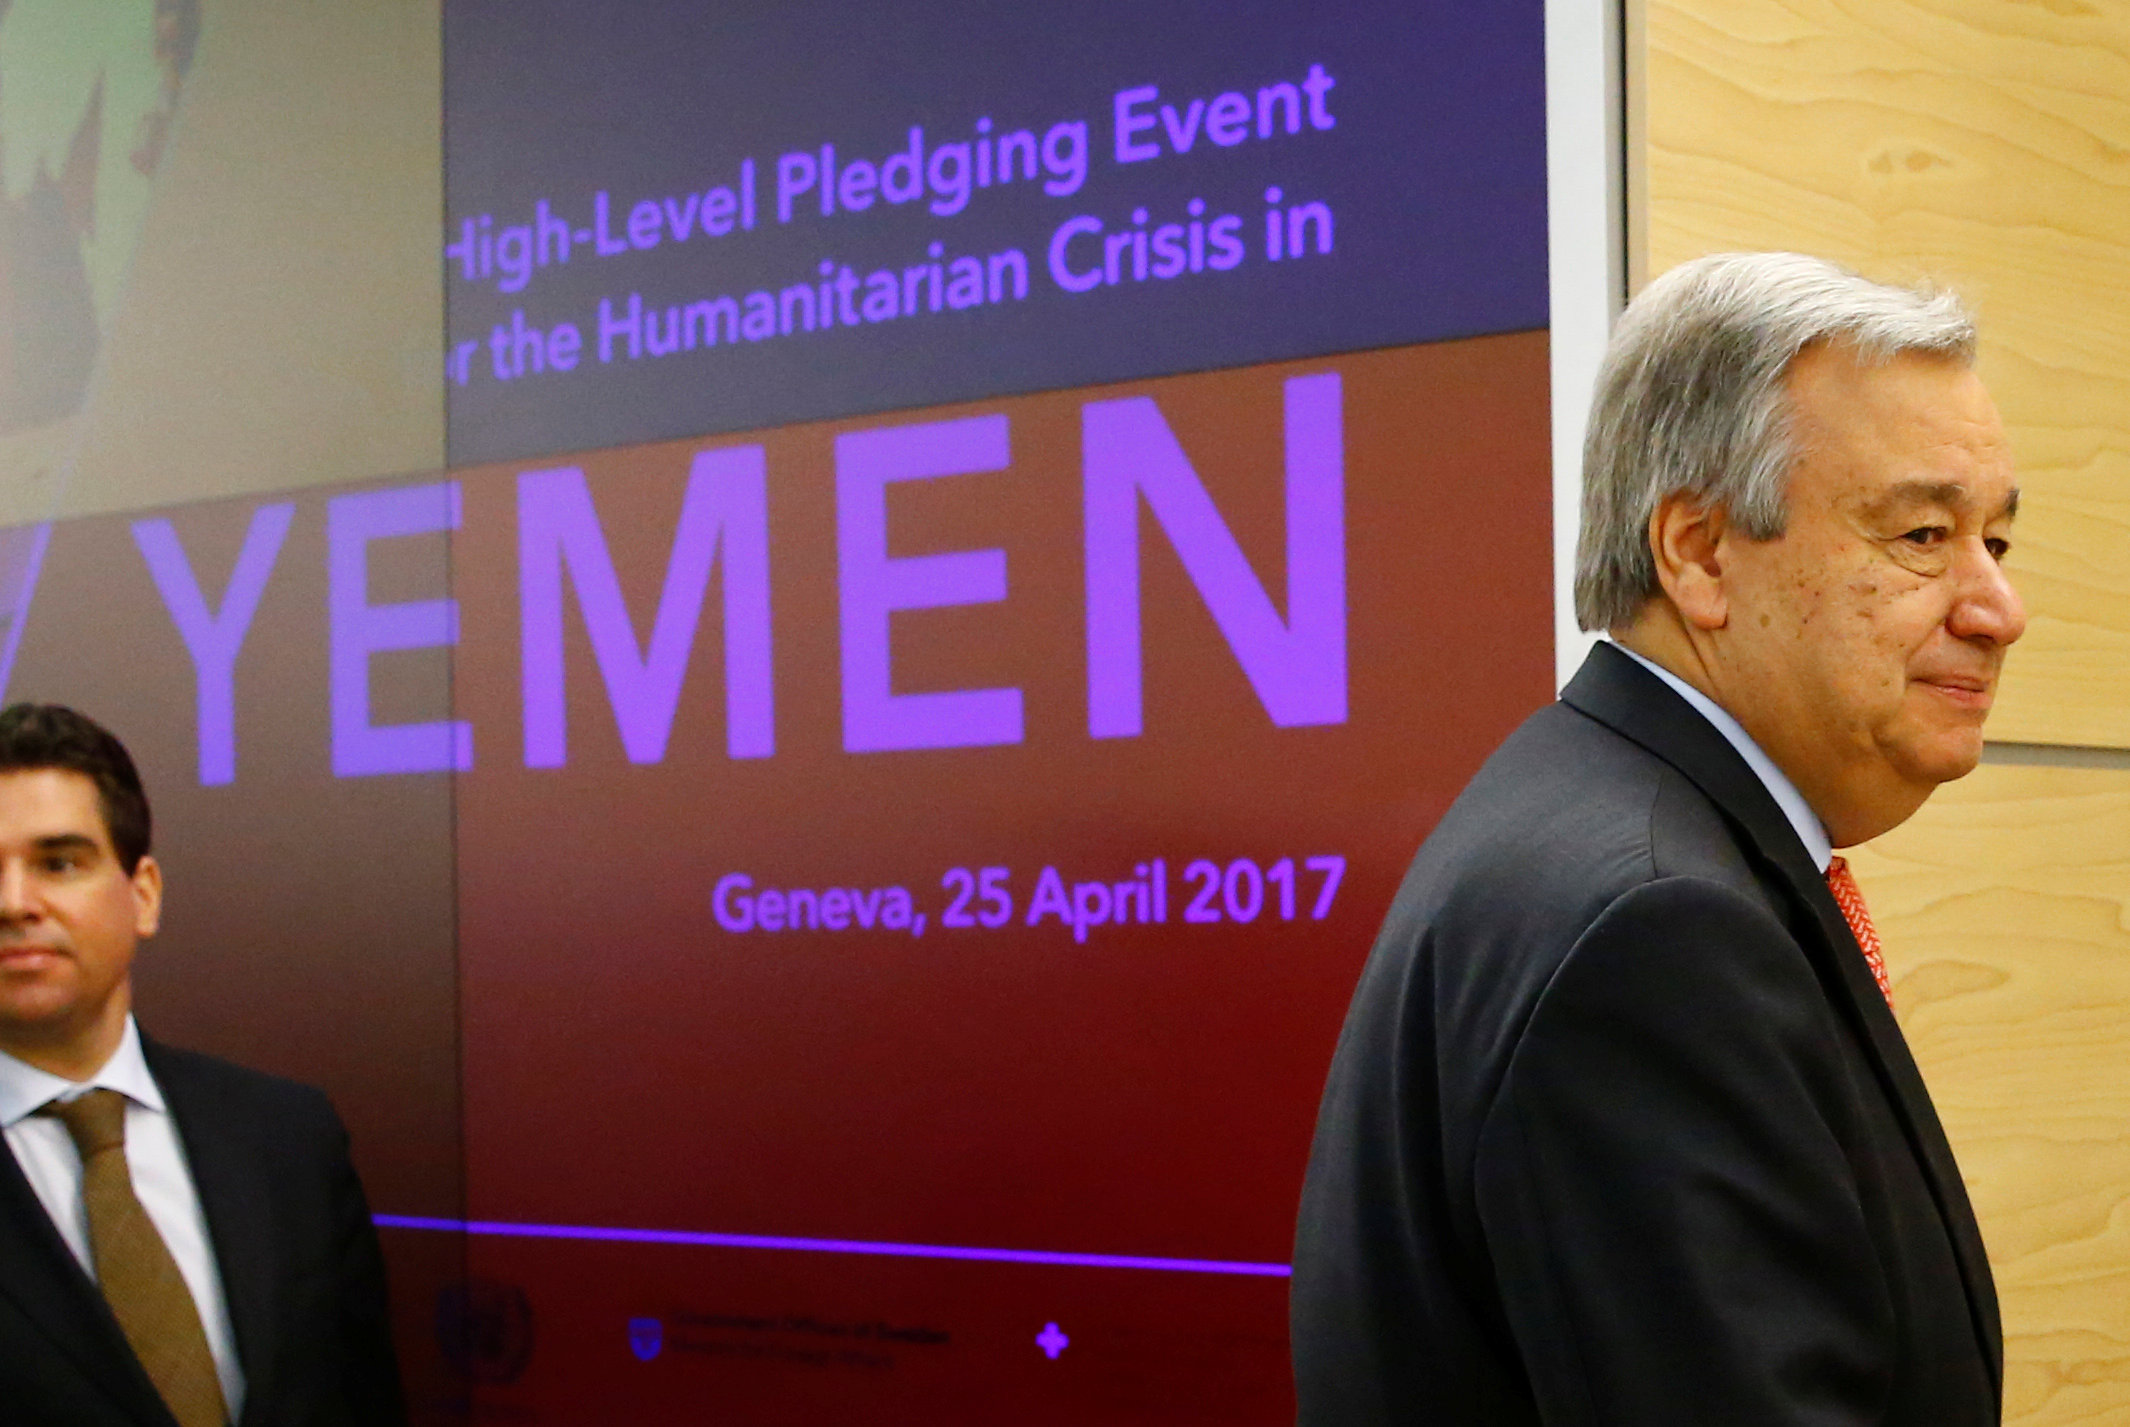 U.N. Secretary General Antonio Guterres attends the High-level Pledging Event for the Humanitarian Crisis in Yemen at the United Nations in Geneva, Switzerland April 25, 2017. REUTERS/Denis Balibouse